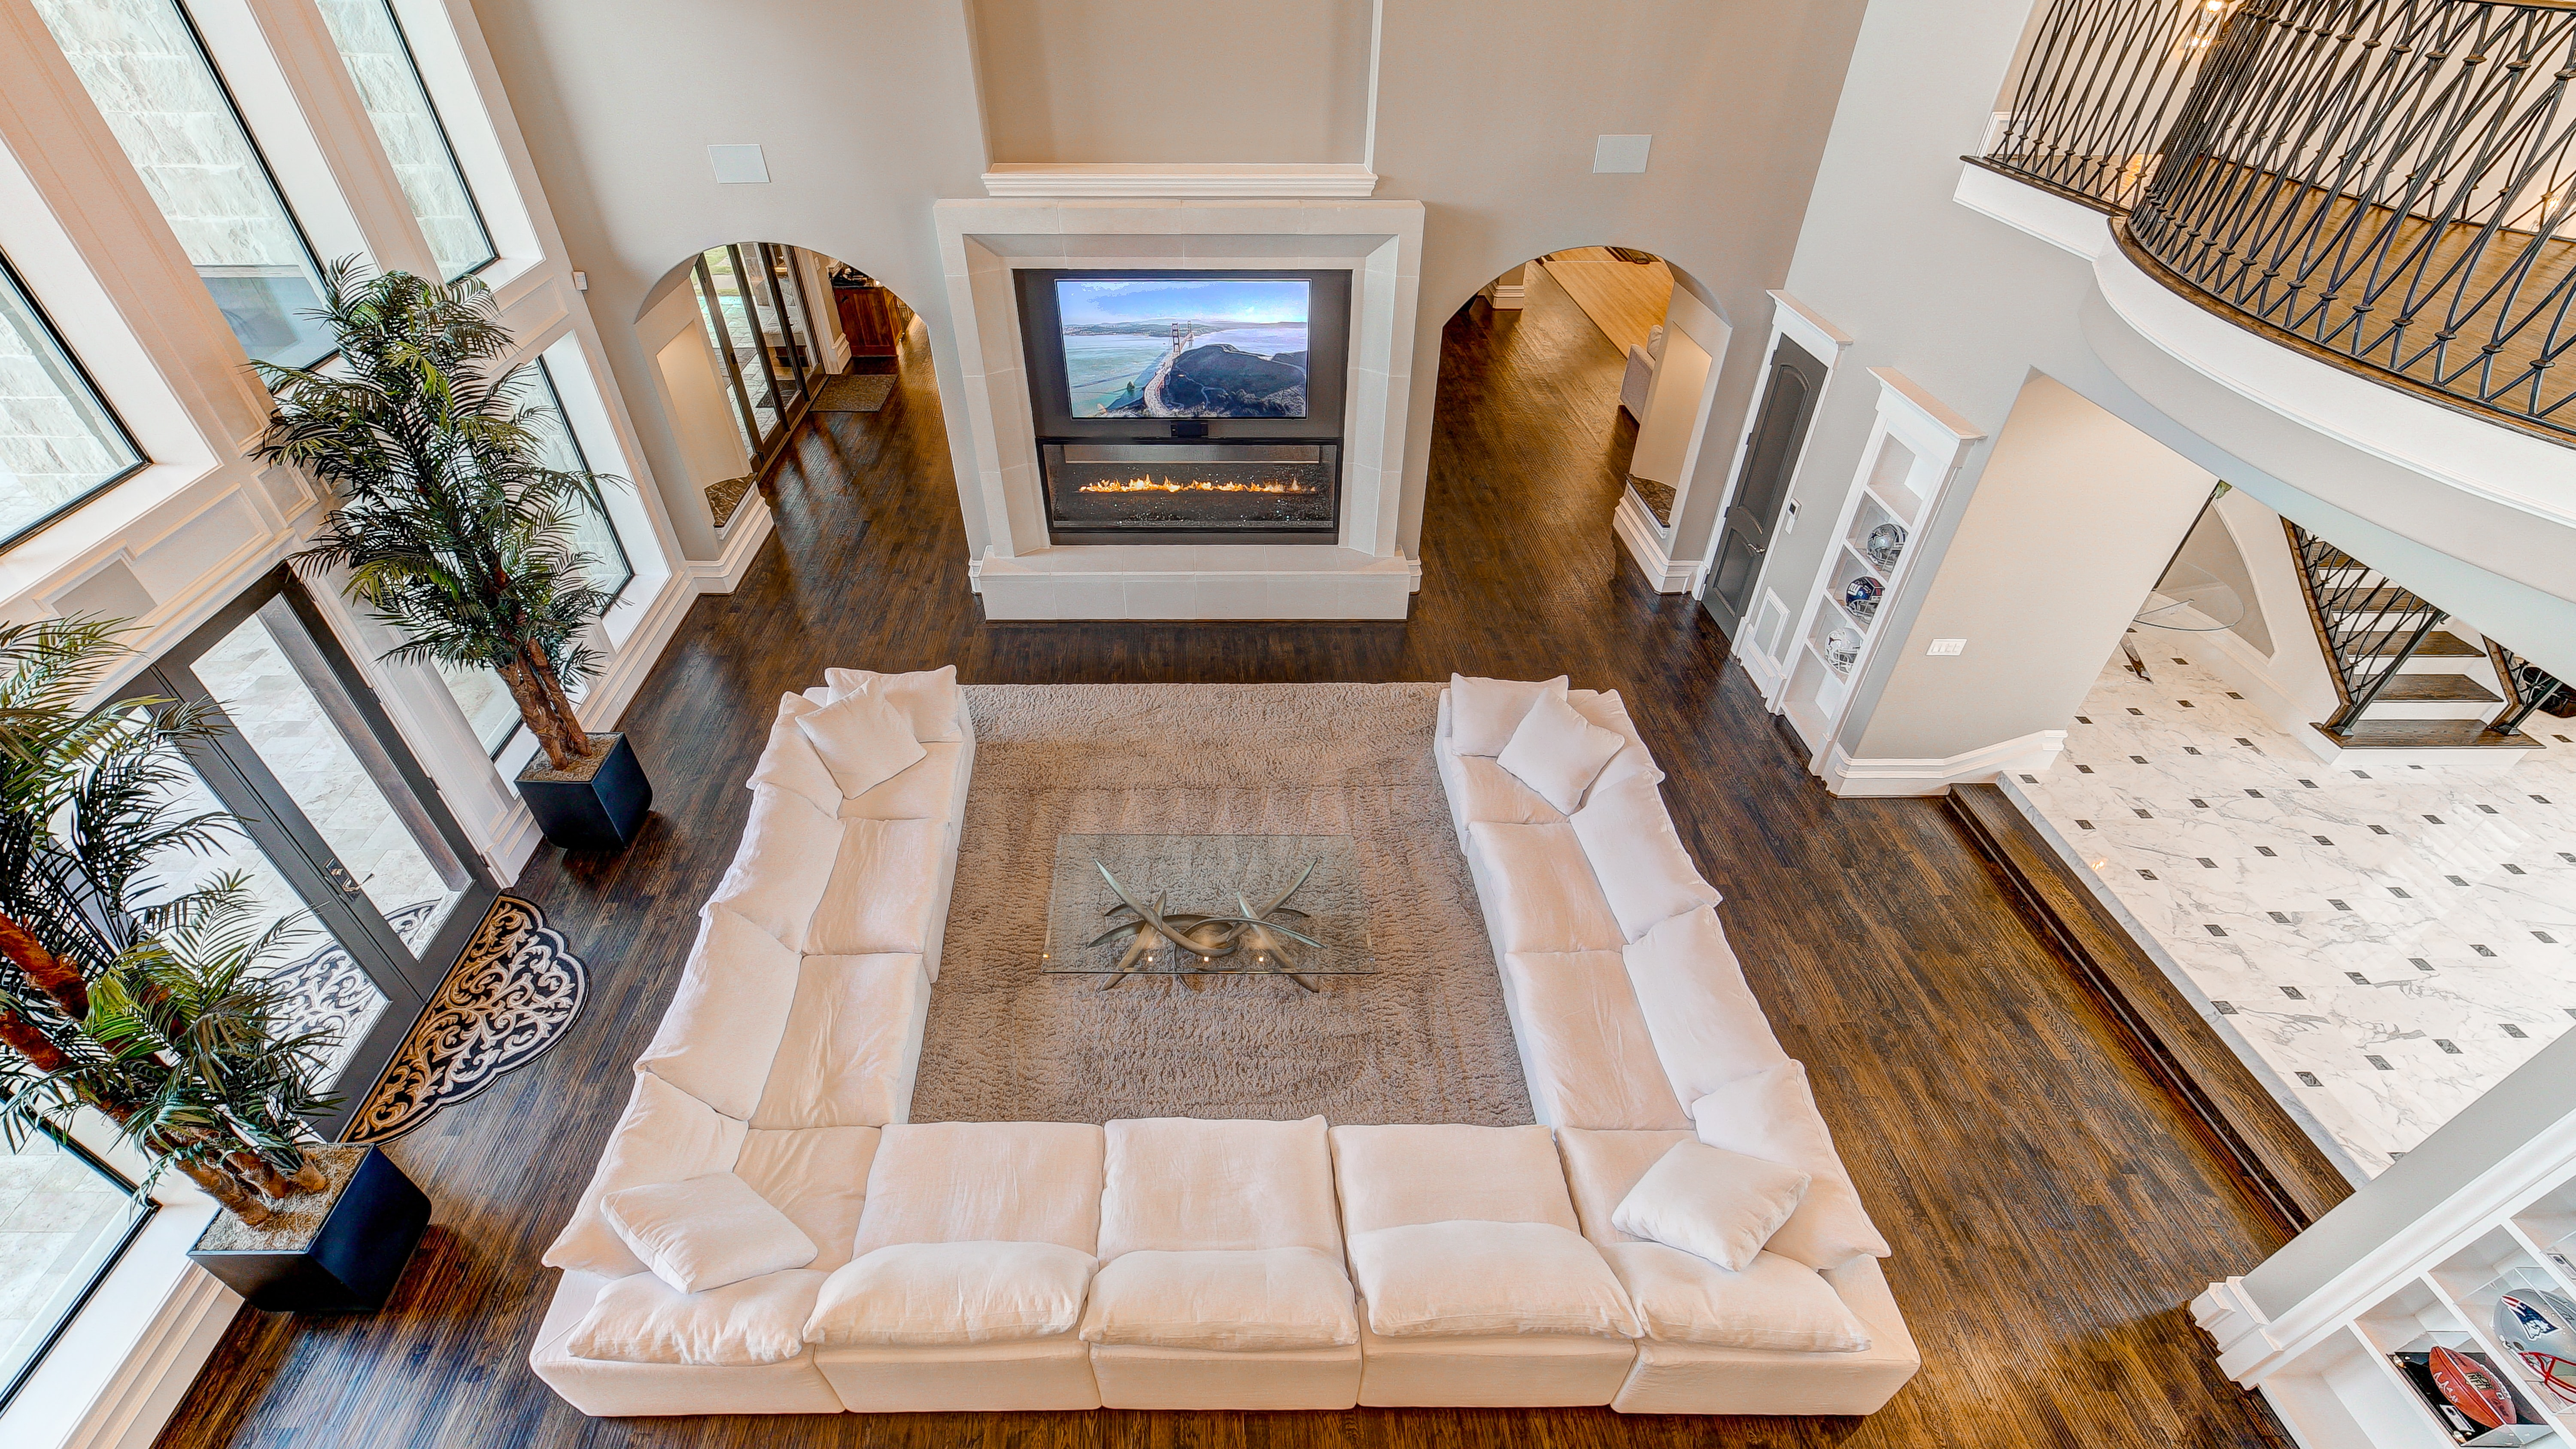 white sectional sofa in front of fireplace inside house